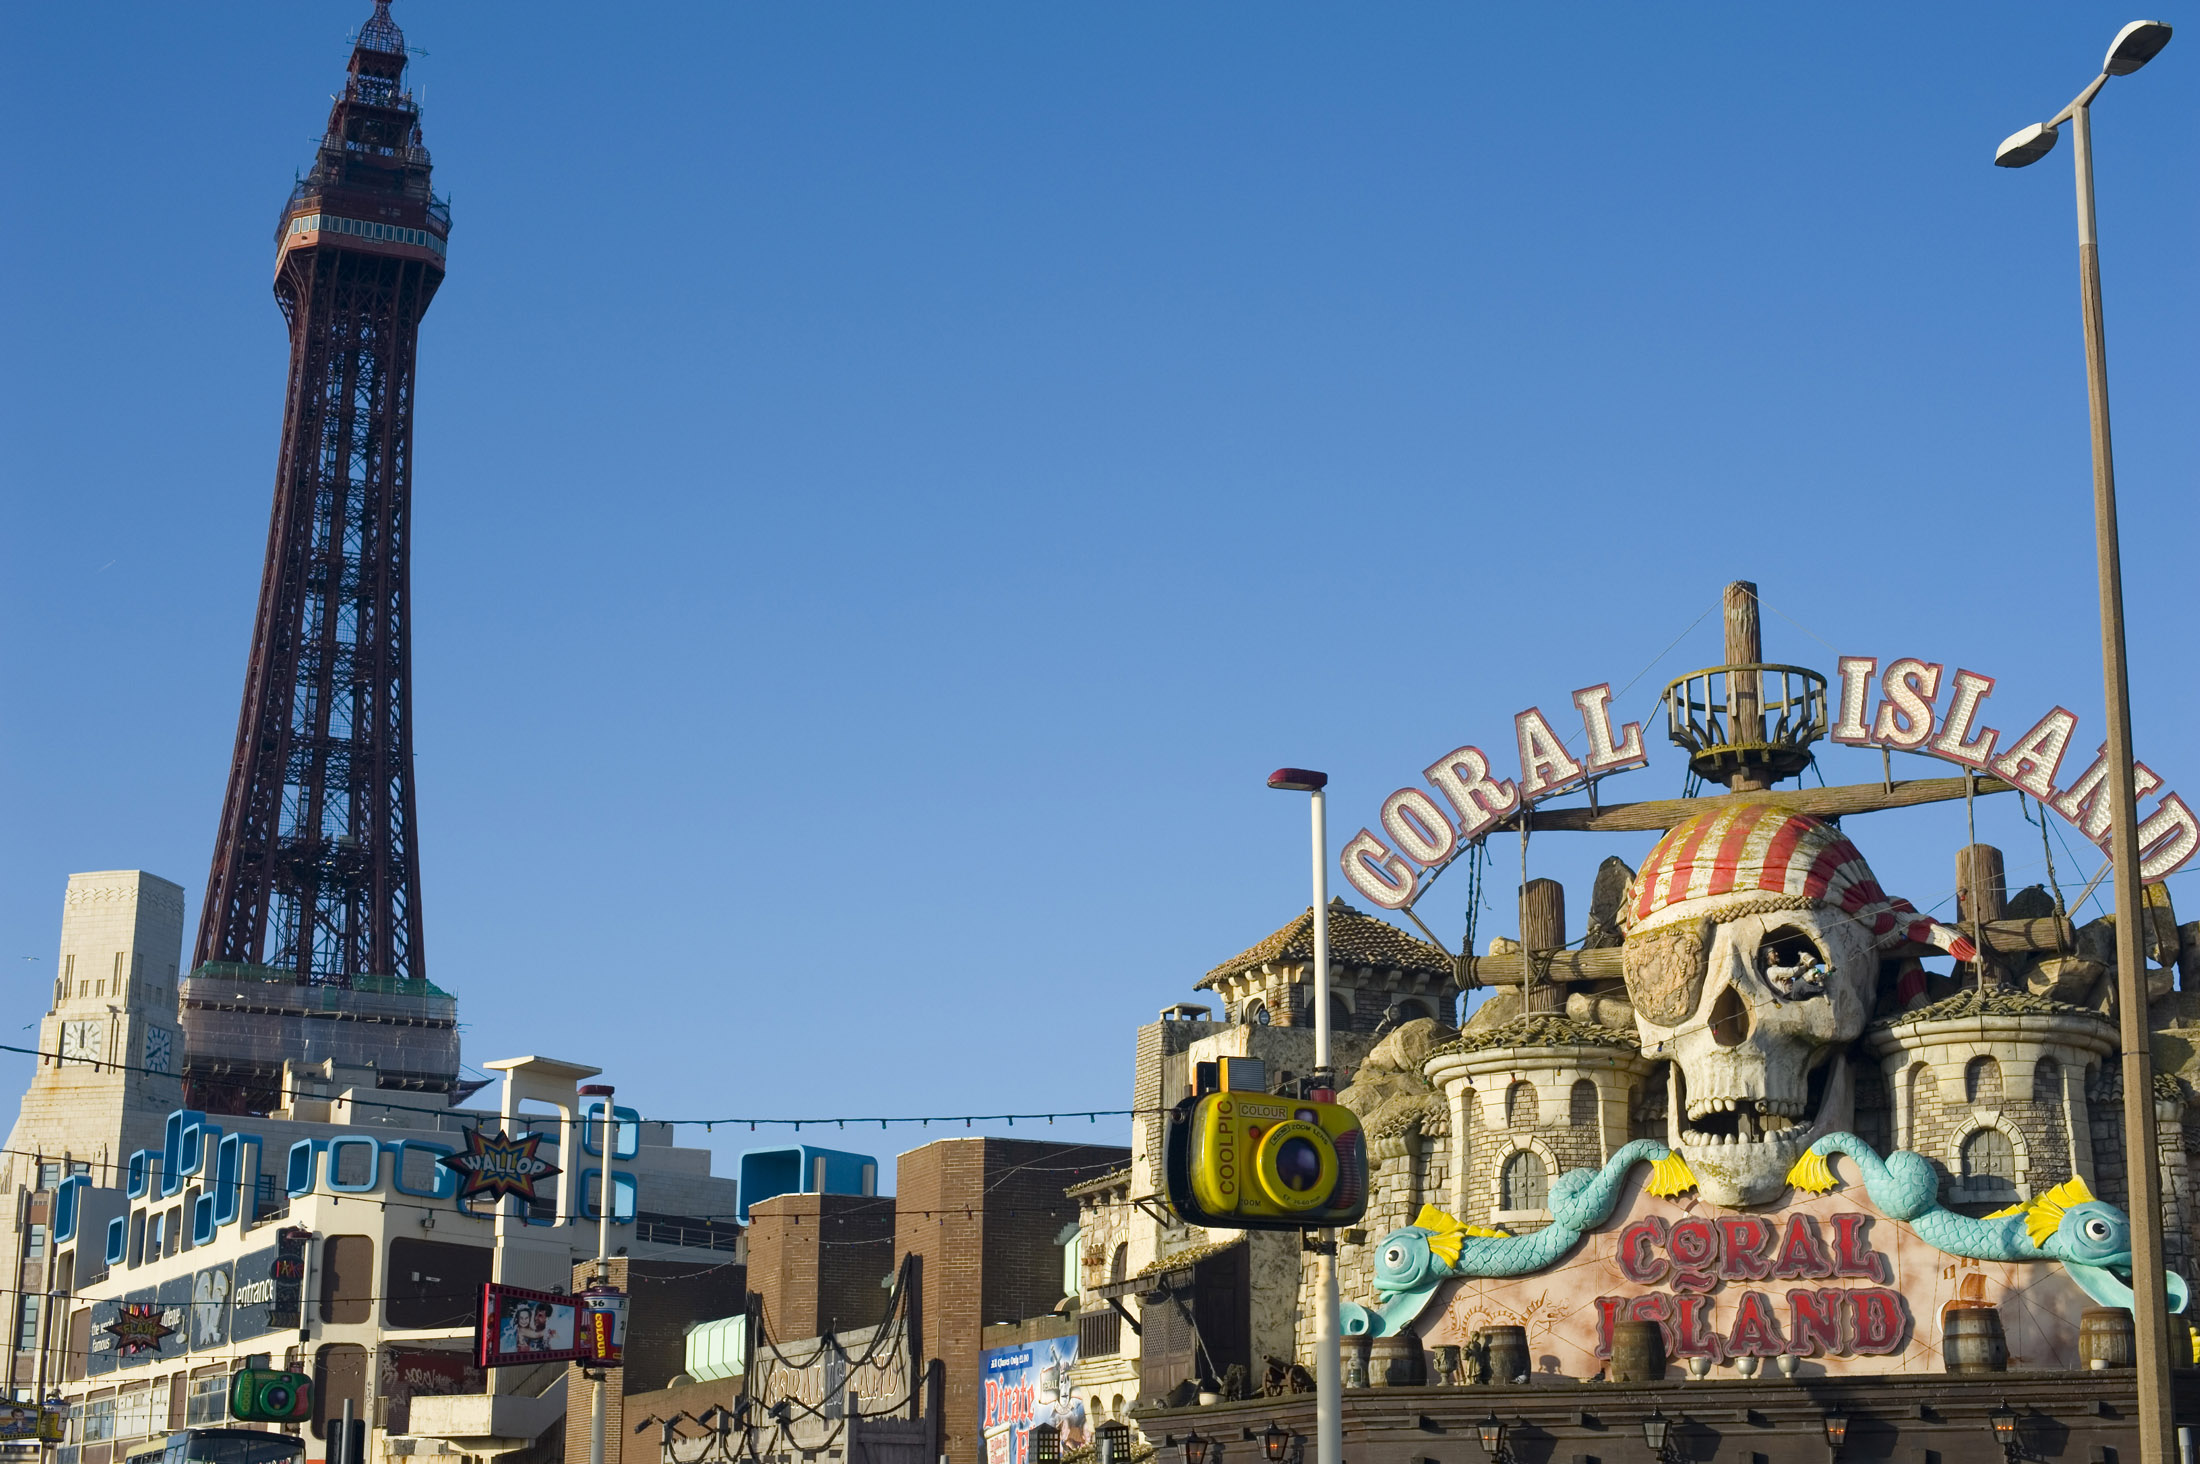 themed amusement arcades on blackpool seafront